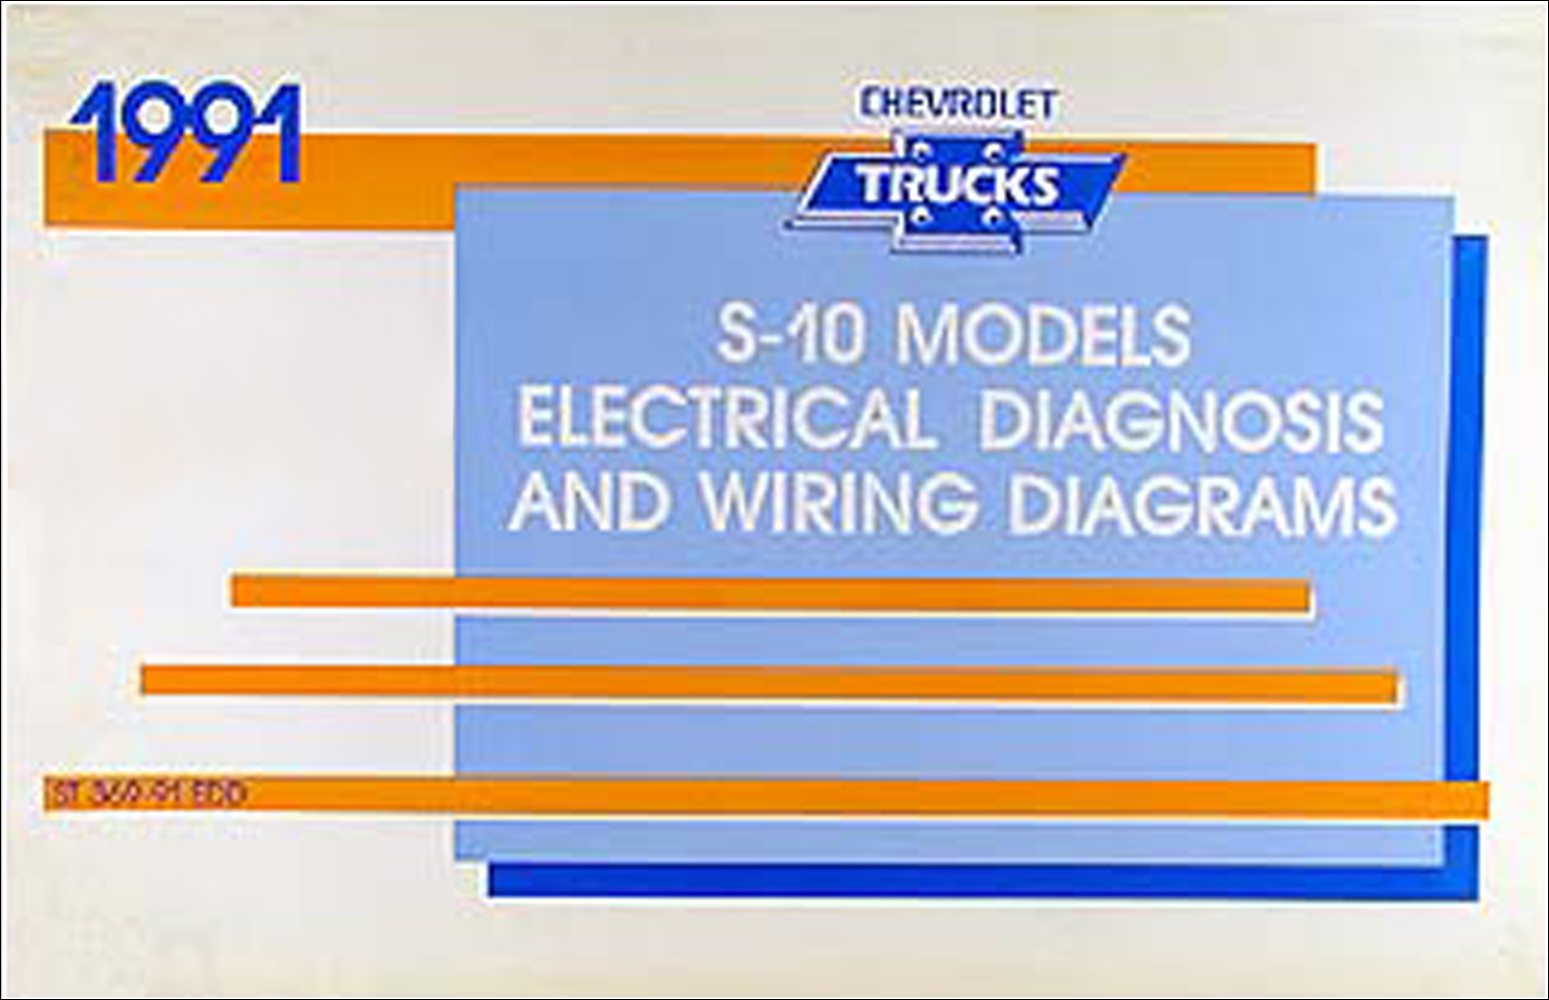 1991 S10 Blazer Wiring Schematic - Wiring Diagram •  Chevy S Blazer Wiring Diagram on 1999 chevy blazer diagram, 1999 chevy s10 tires, 1999 acura rl wiring diagram, 1999 blazer wiring diagram, 1999 honda passport wiring diagram, 1999 honda odyssey wiring diagram, s 10 truck wiring diagram, 1999 isuzu rodeo wiring diagram, 1999 chevy s10 radiator, s10 wiring harness diagram, chevy s10 2.2 engine diagram, 1986 ford f-250 wiring diagram, 1999 chevy blazer common problems, 1999 acura integra wiring diagram, 99 blazer wiring diagram, 2002 chevy trailblazer 4x4 wiring diagram, 1999 chevy s10 radio harness, 1999 lincoln navigator wiring diagram, 2000 chevrolet truck wiring diagram, 1999 s10 fuel pump wiring diagram,